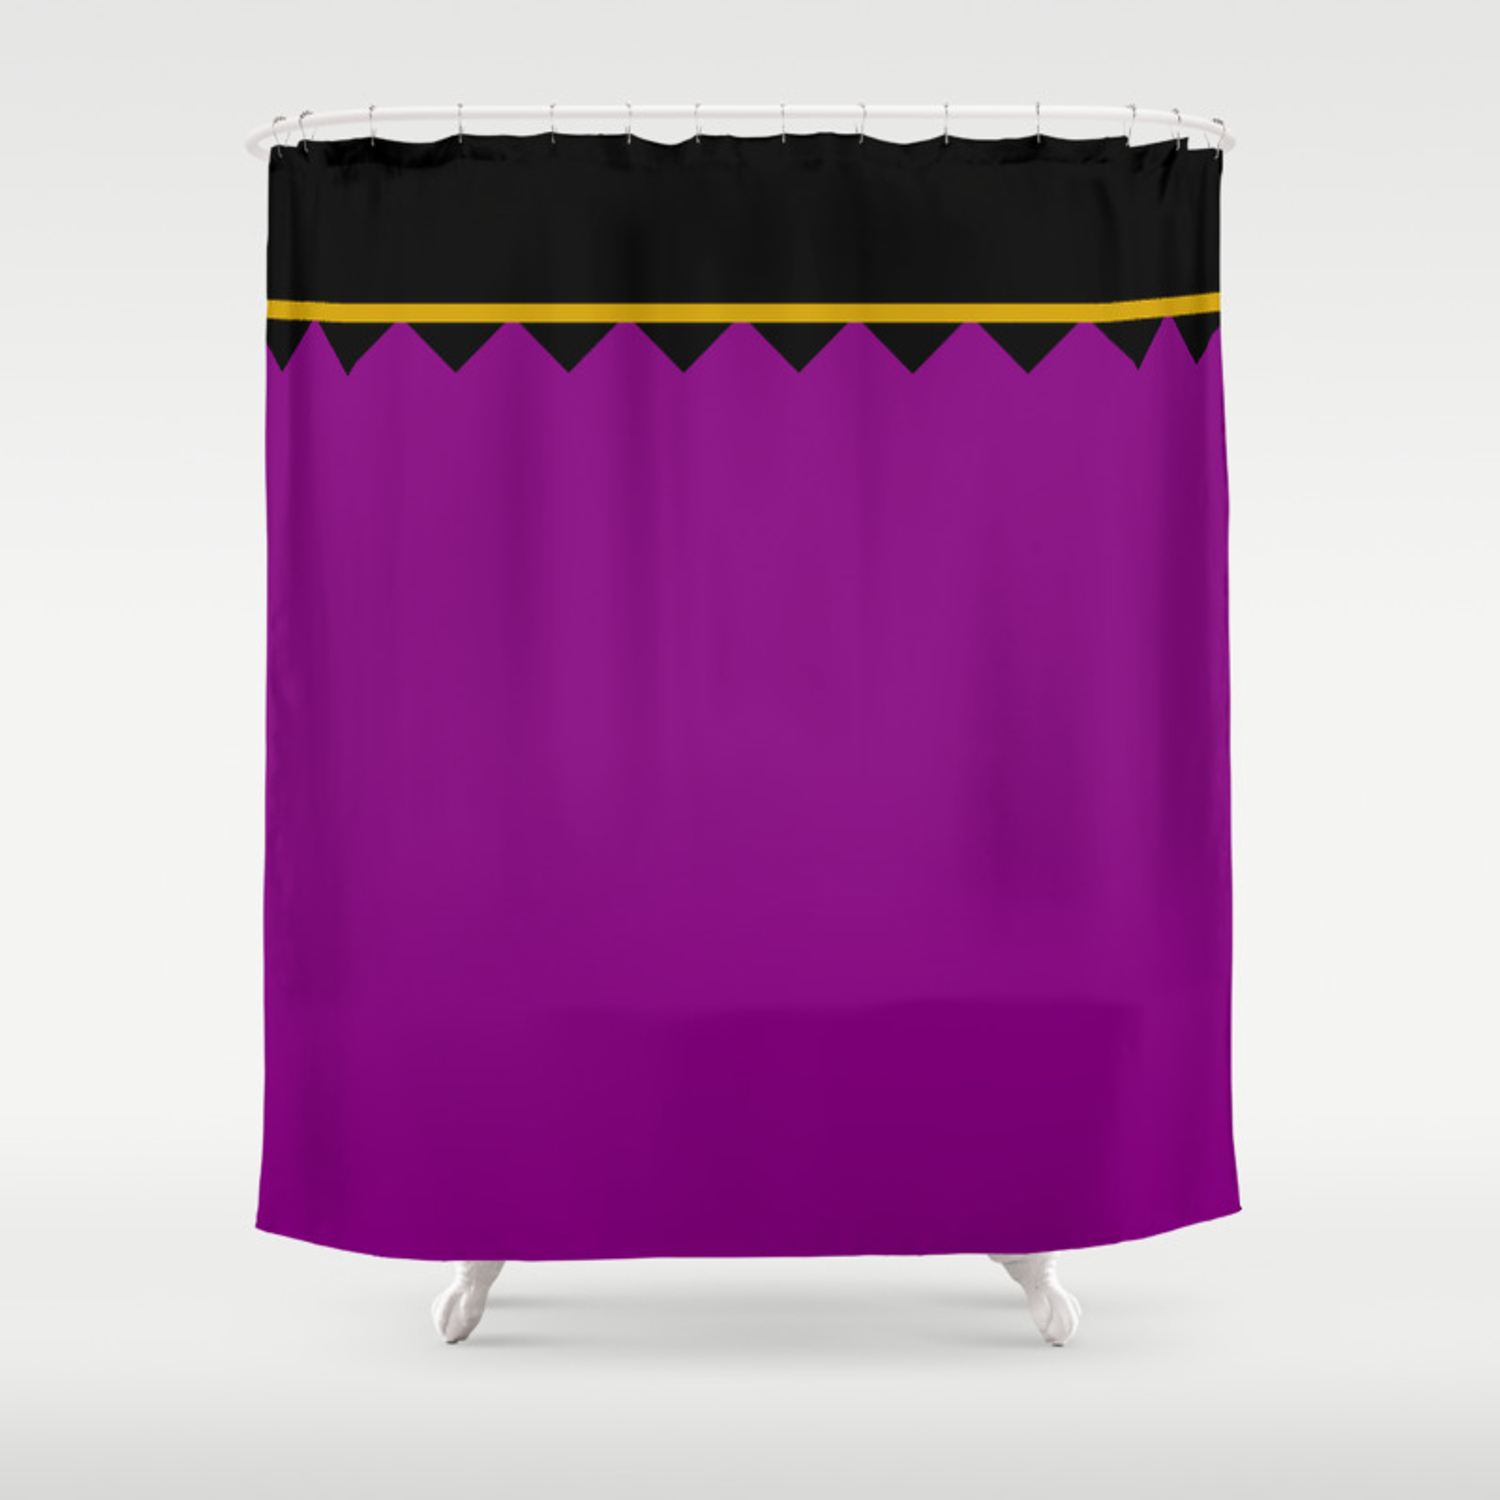 Luxury Artistic Edition Morocco Purple With Black Shower Curtain